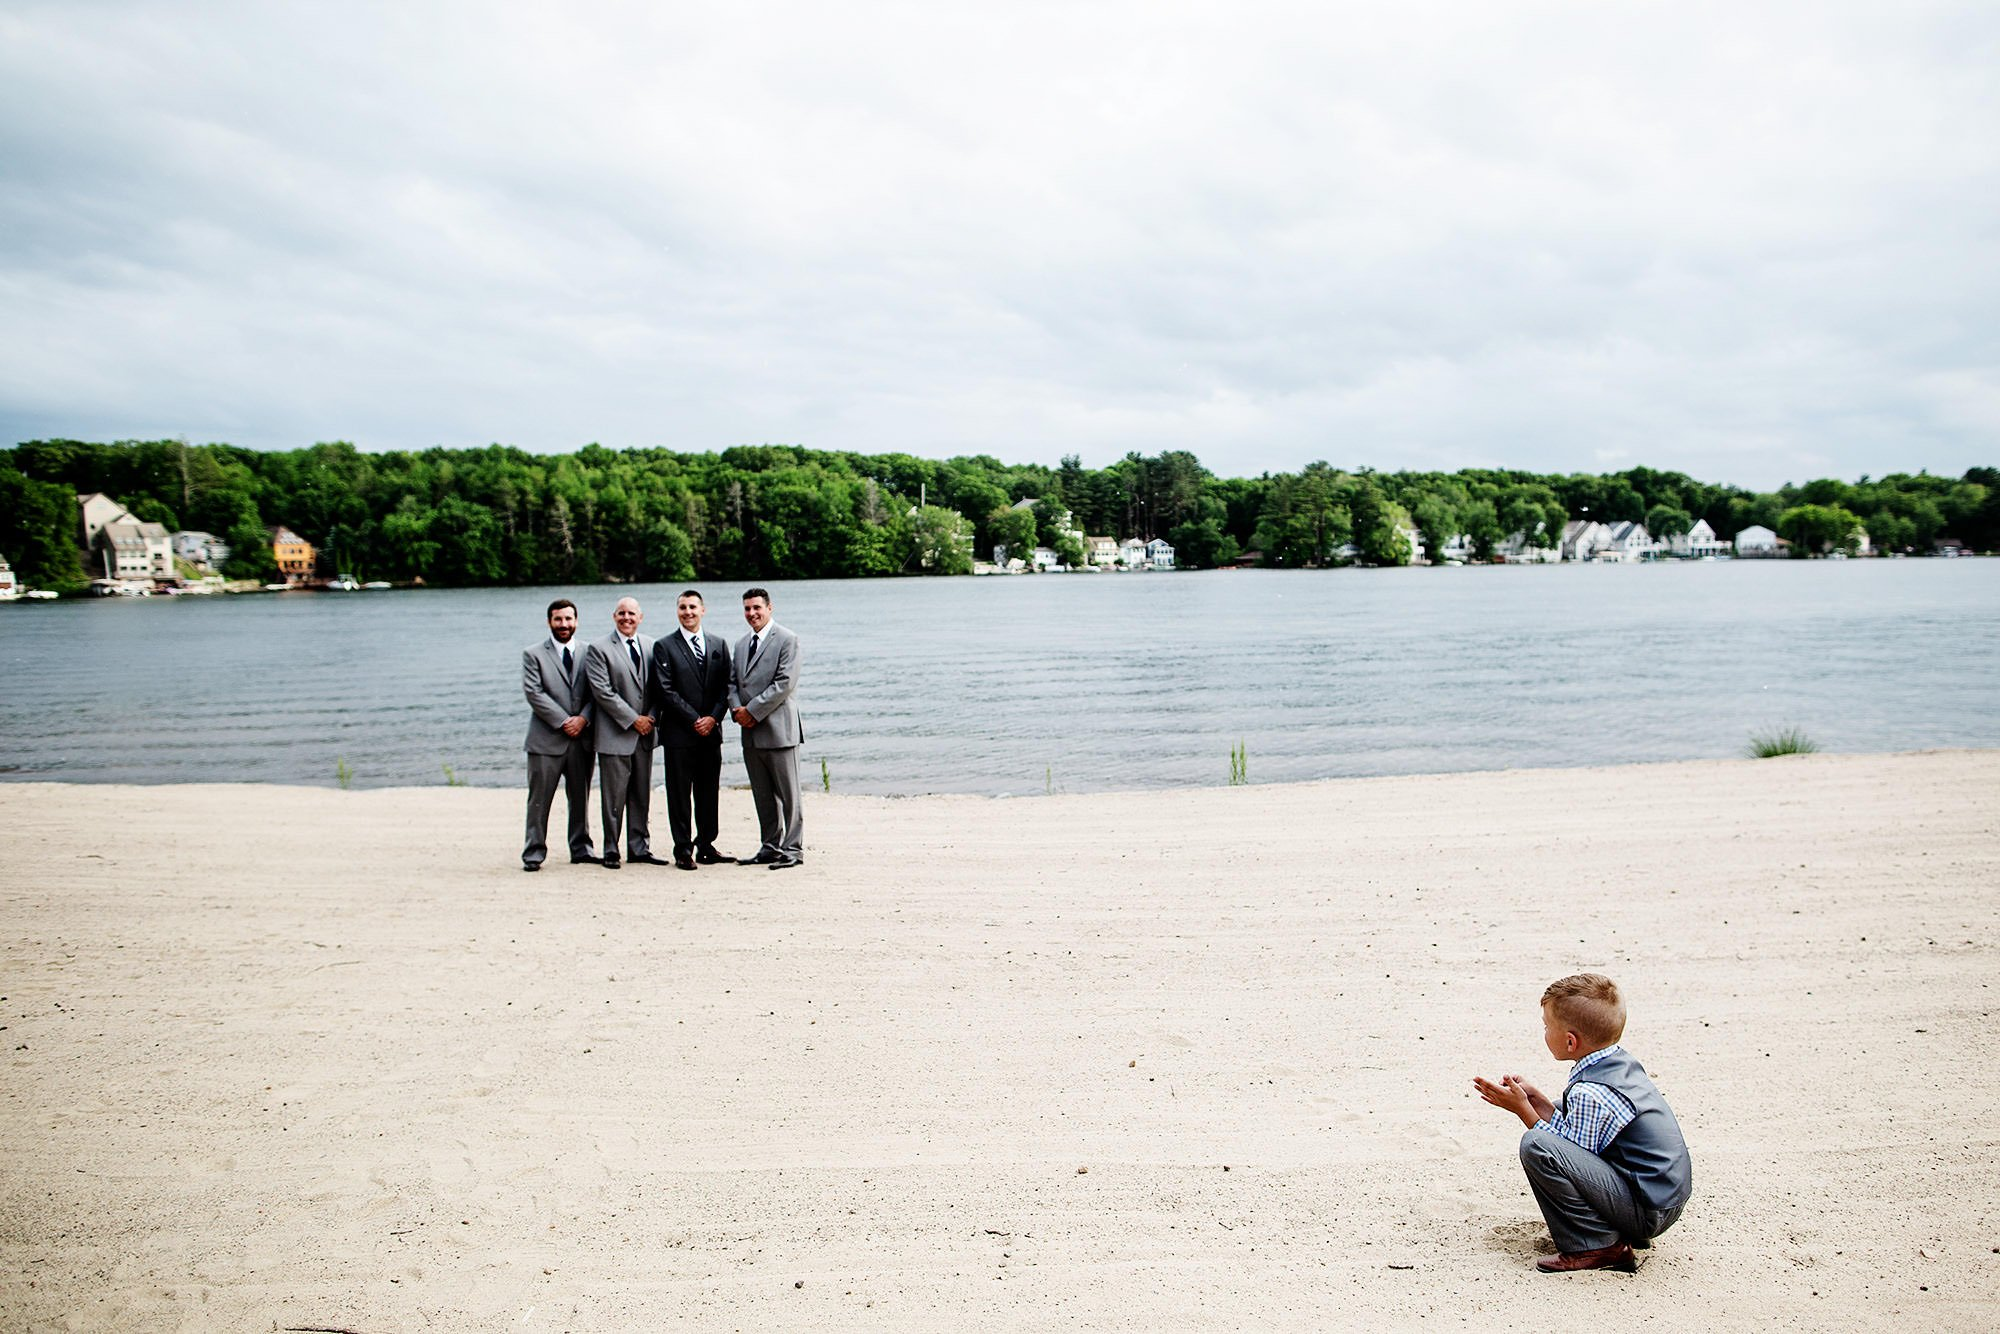 Lake Pearl Wrentham Wedding  I  A ring bearer watches as portraits are taken of the groomsmen.